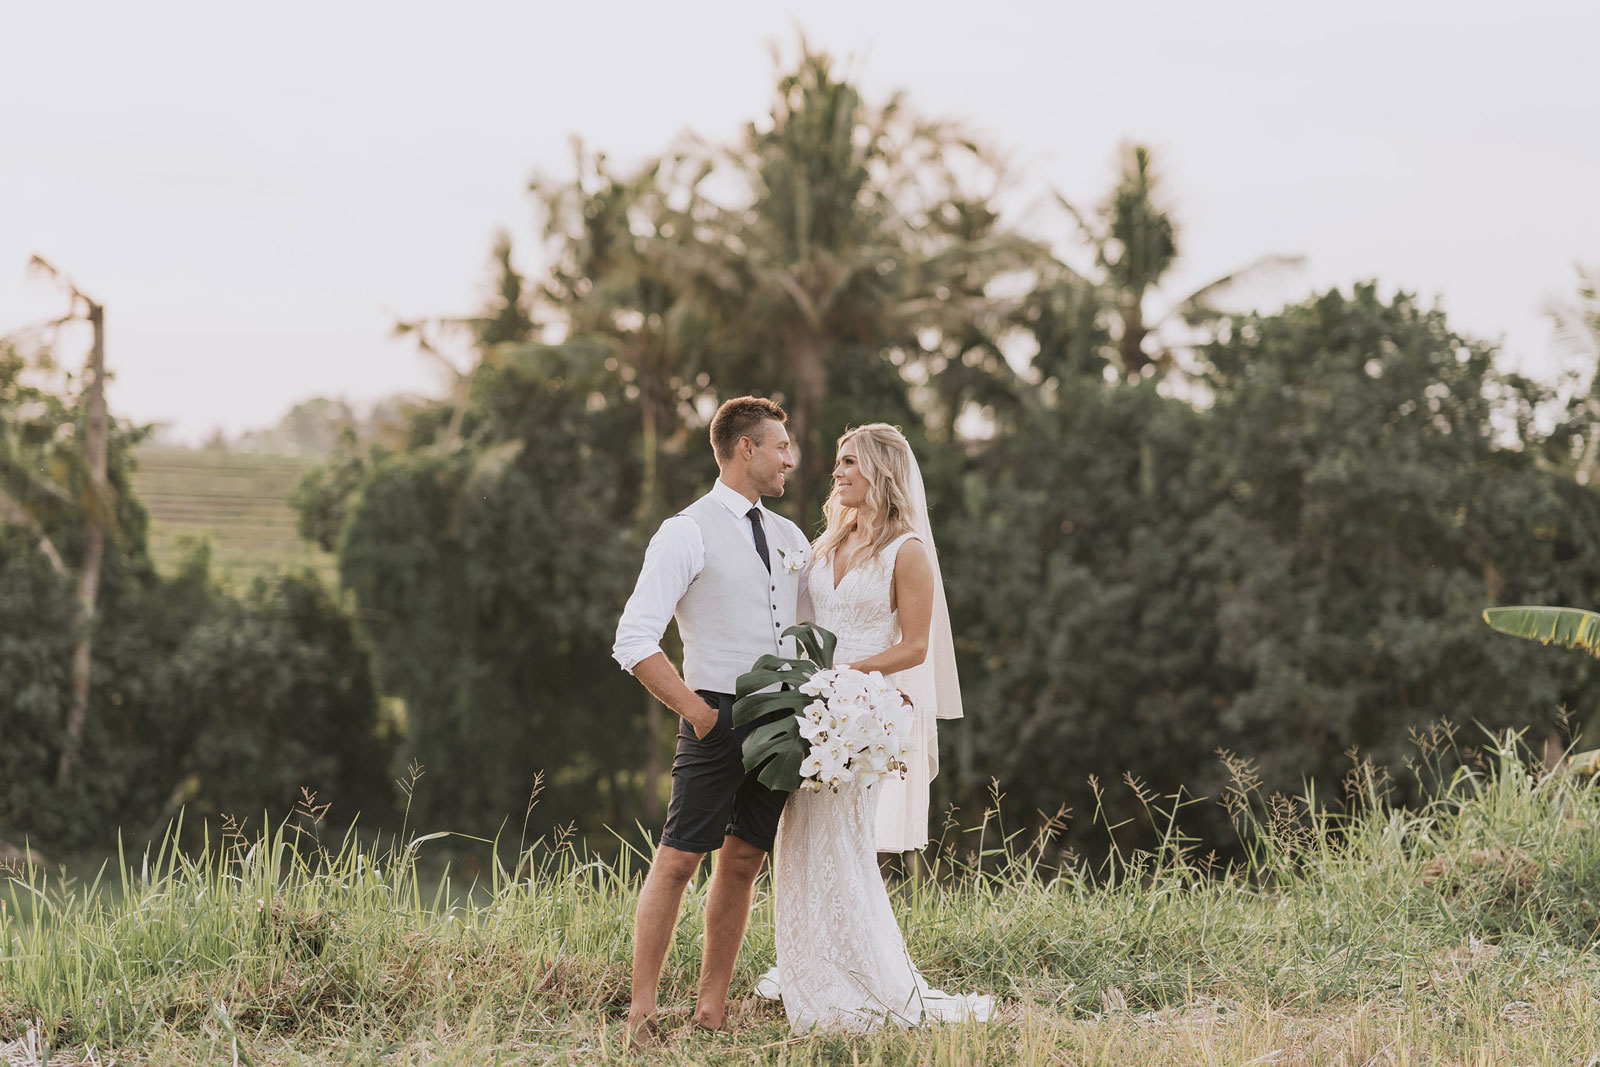 newfound-t-k-canggu-bali-ubud-wedding-photographer-593